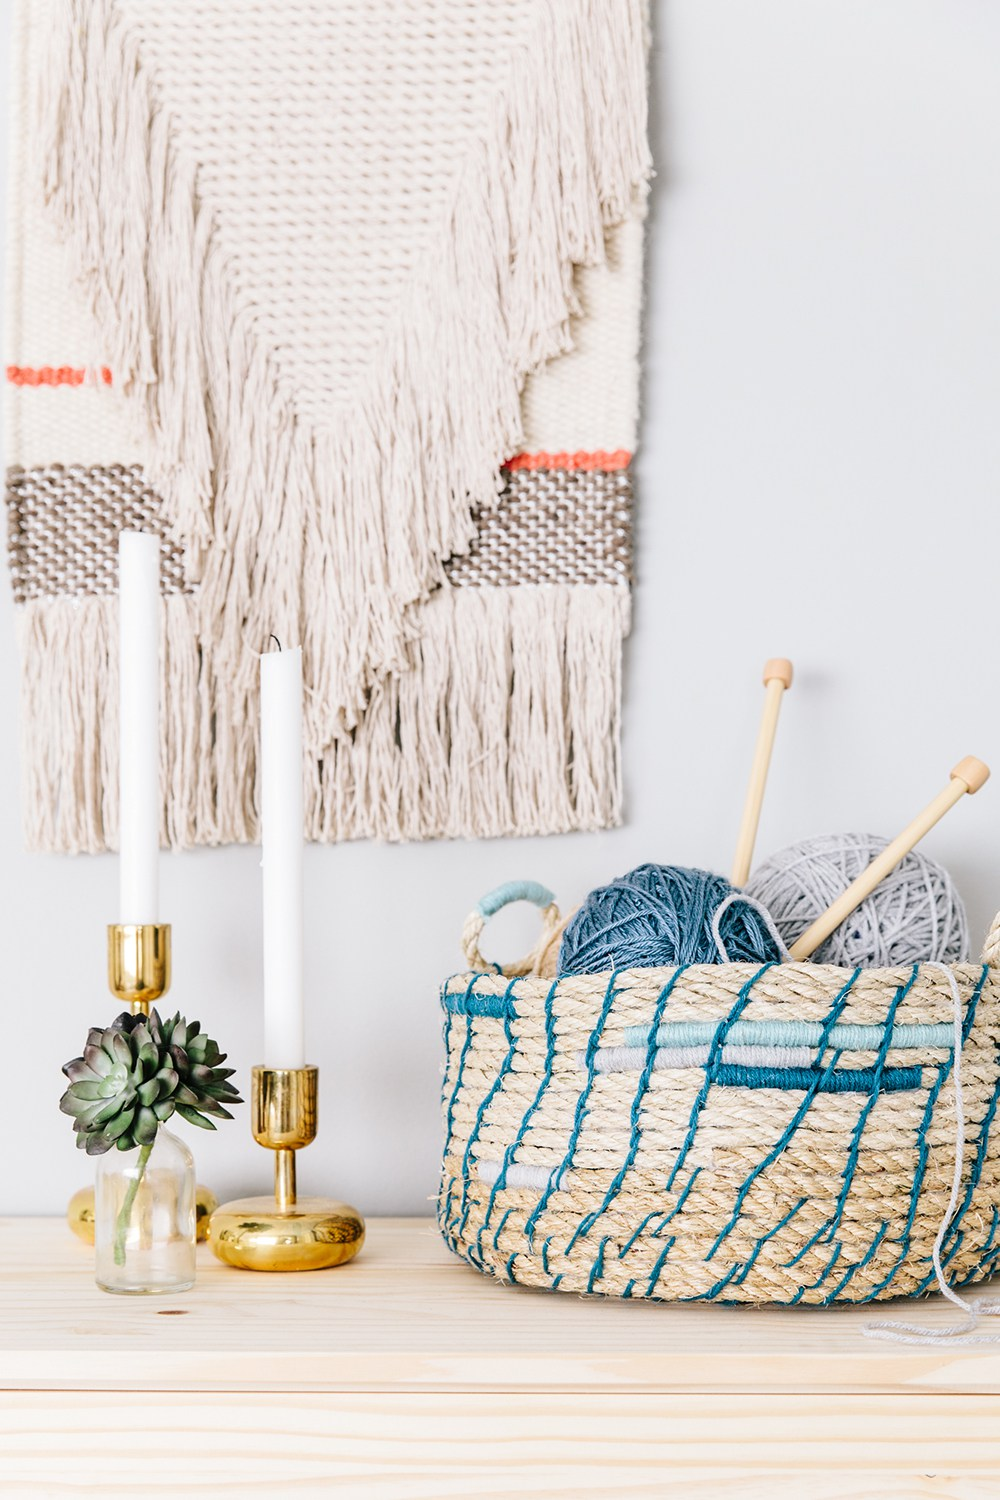 DIY rope basket from The House That Lars Built